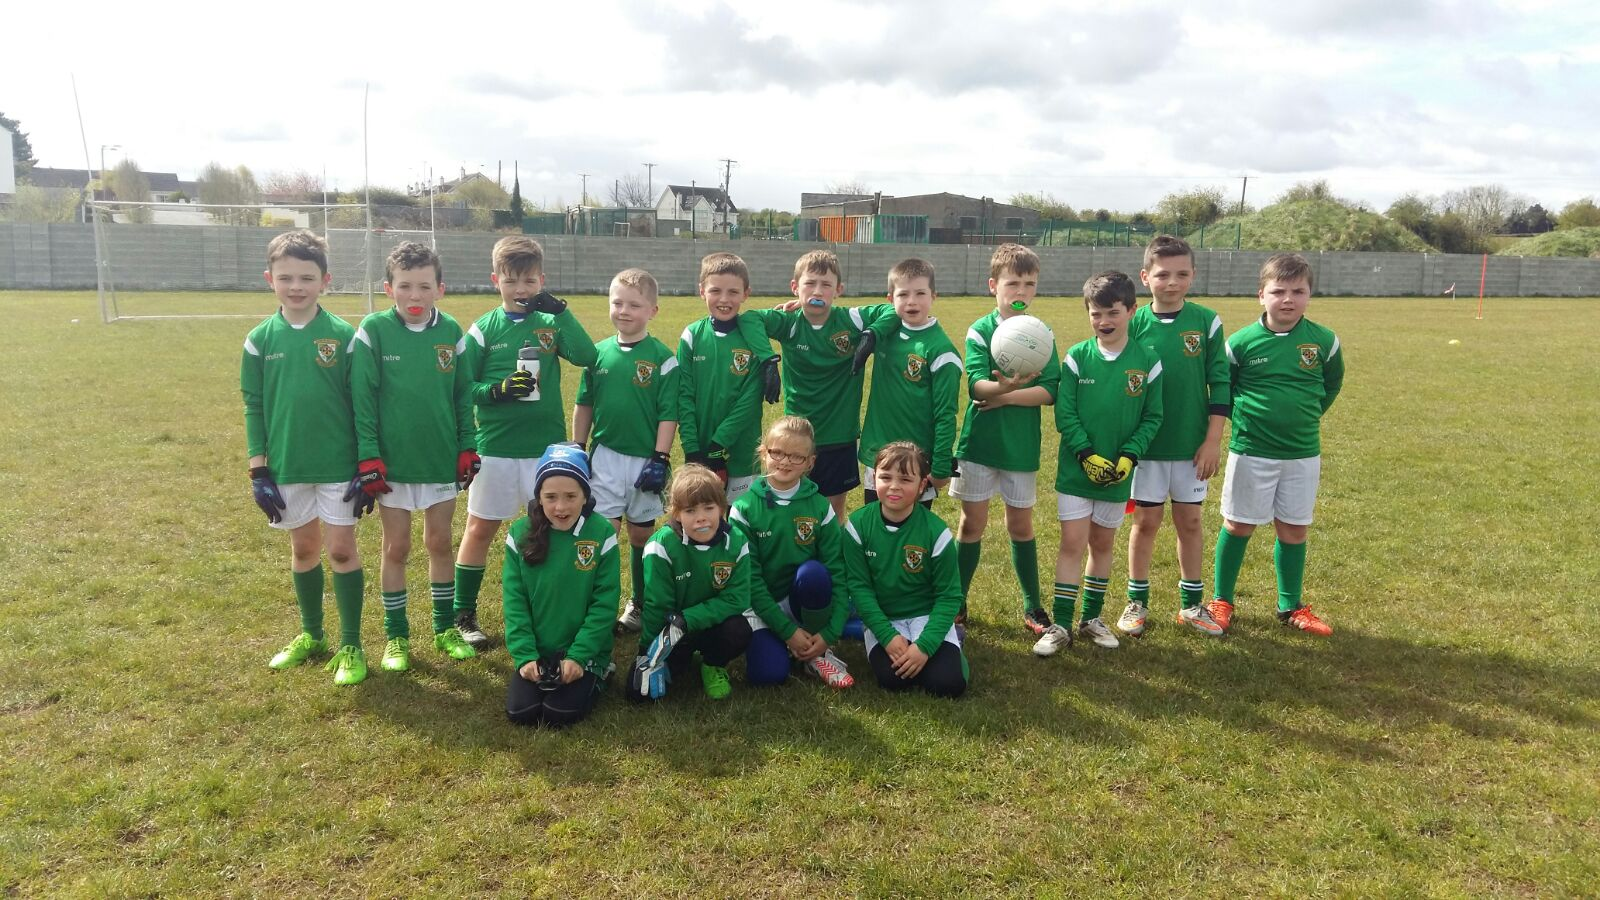 U9 Team pic against Trim U9 30th April 2016b